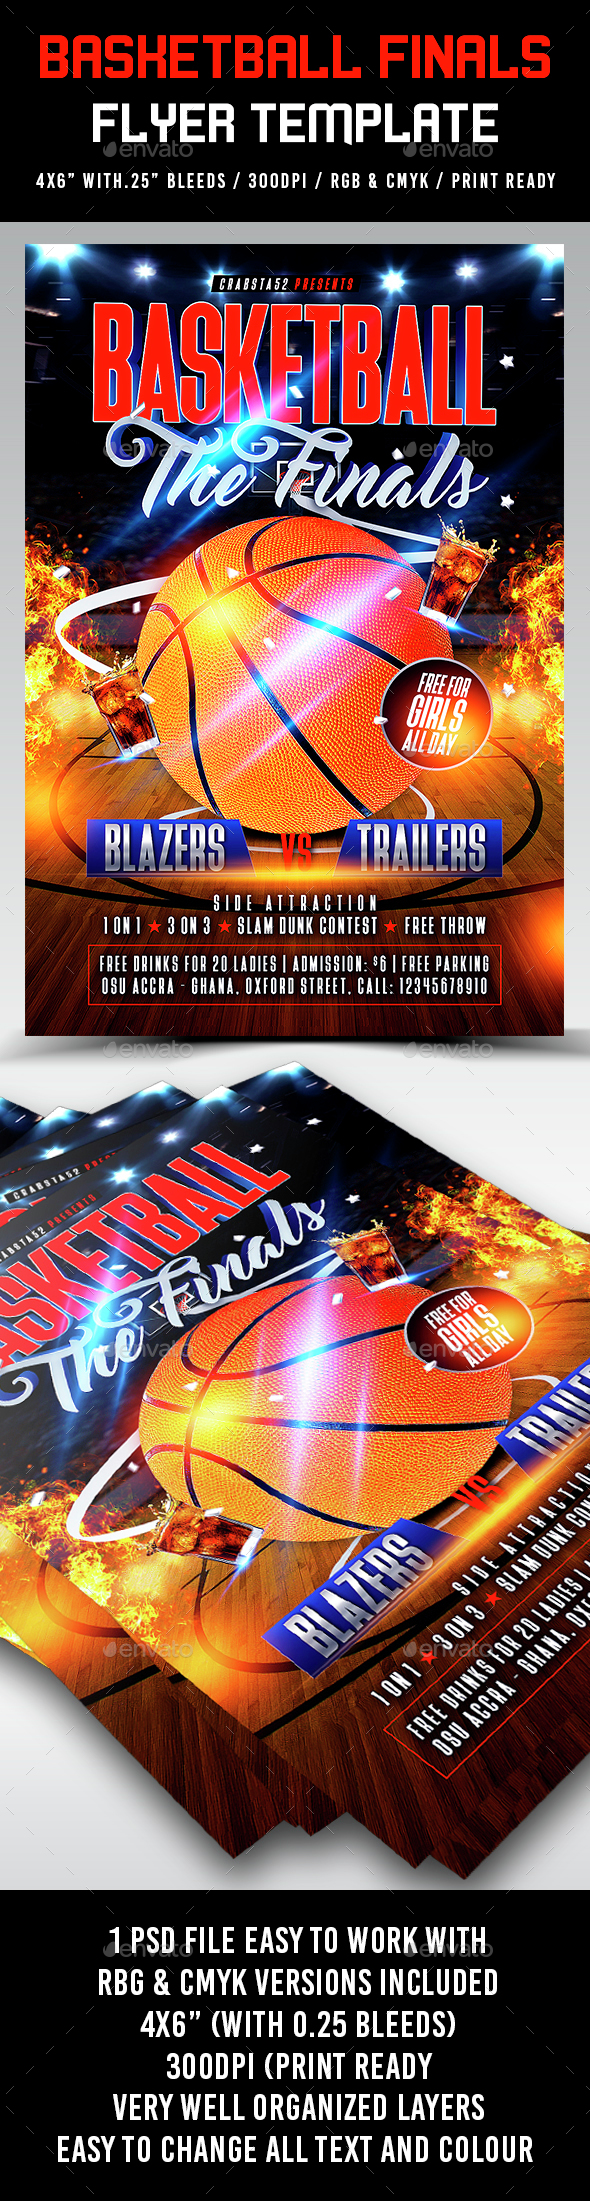 Basketball Finals Flyer Template - Sports Events